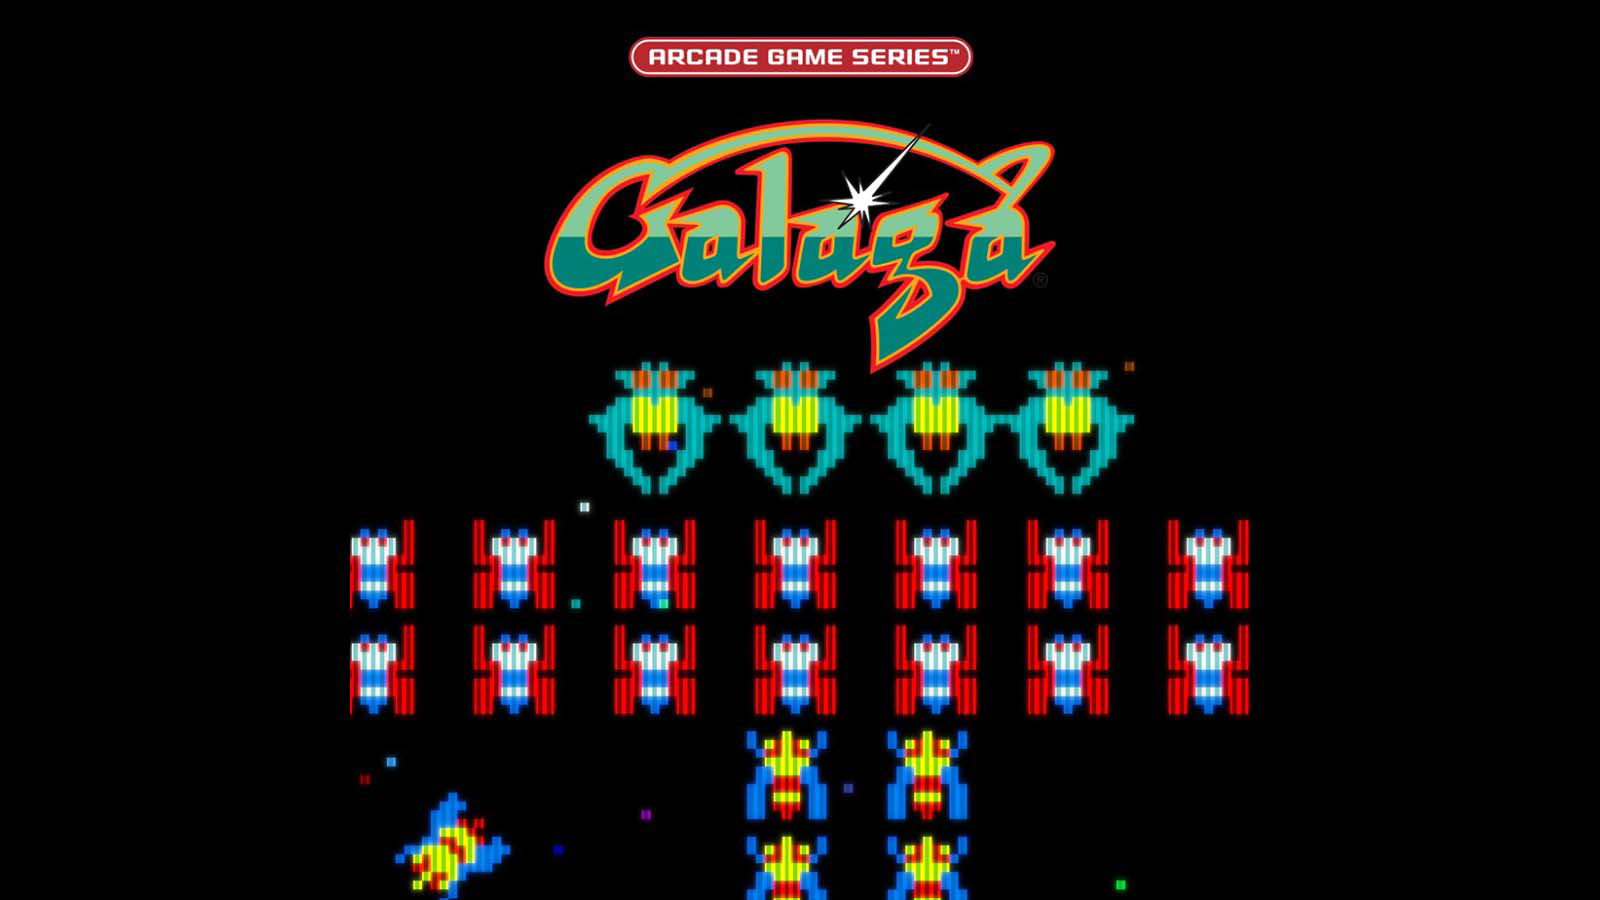 Galaga Png 101 images in Collection Page 2 1600x900